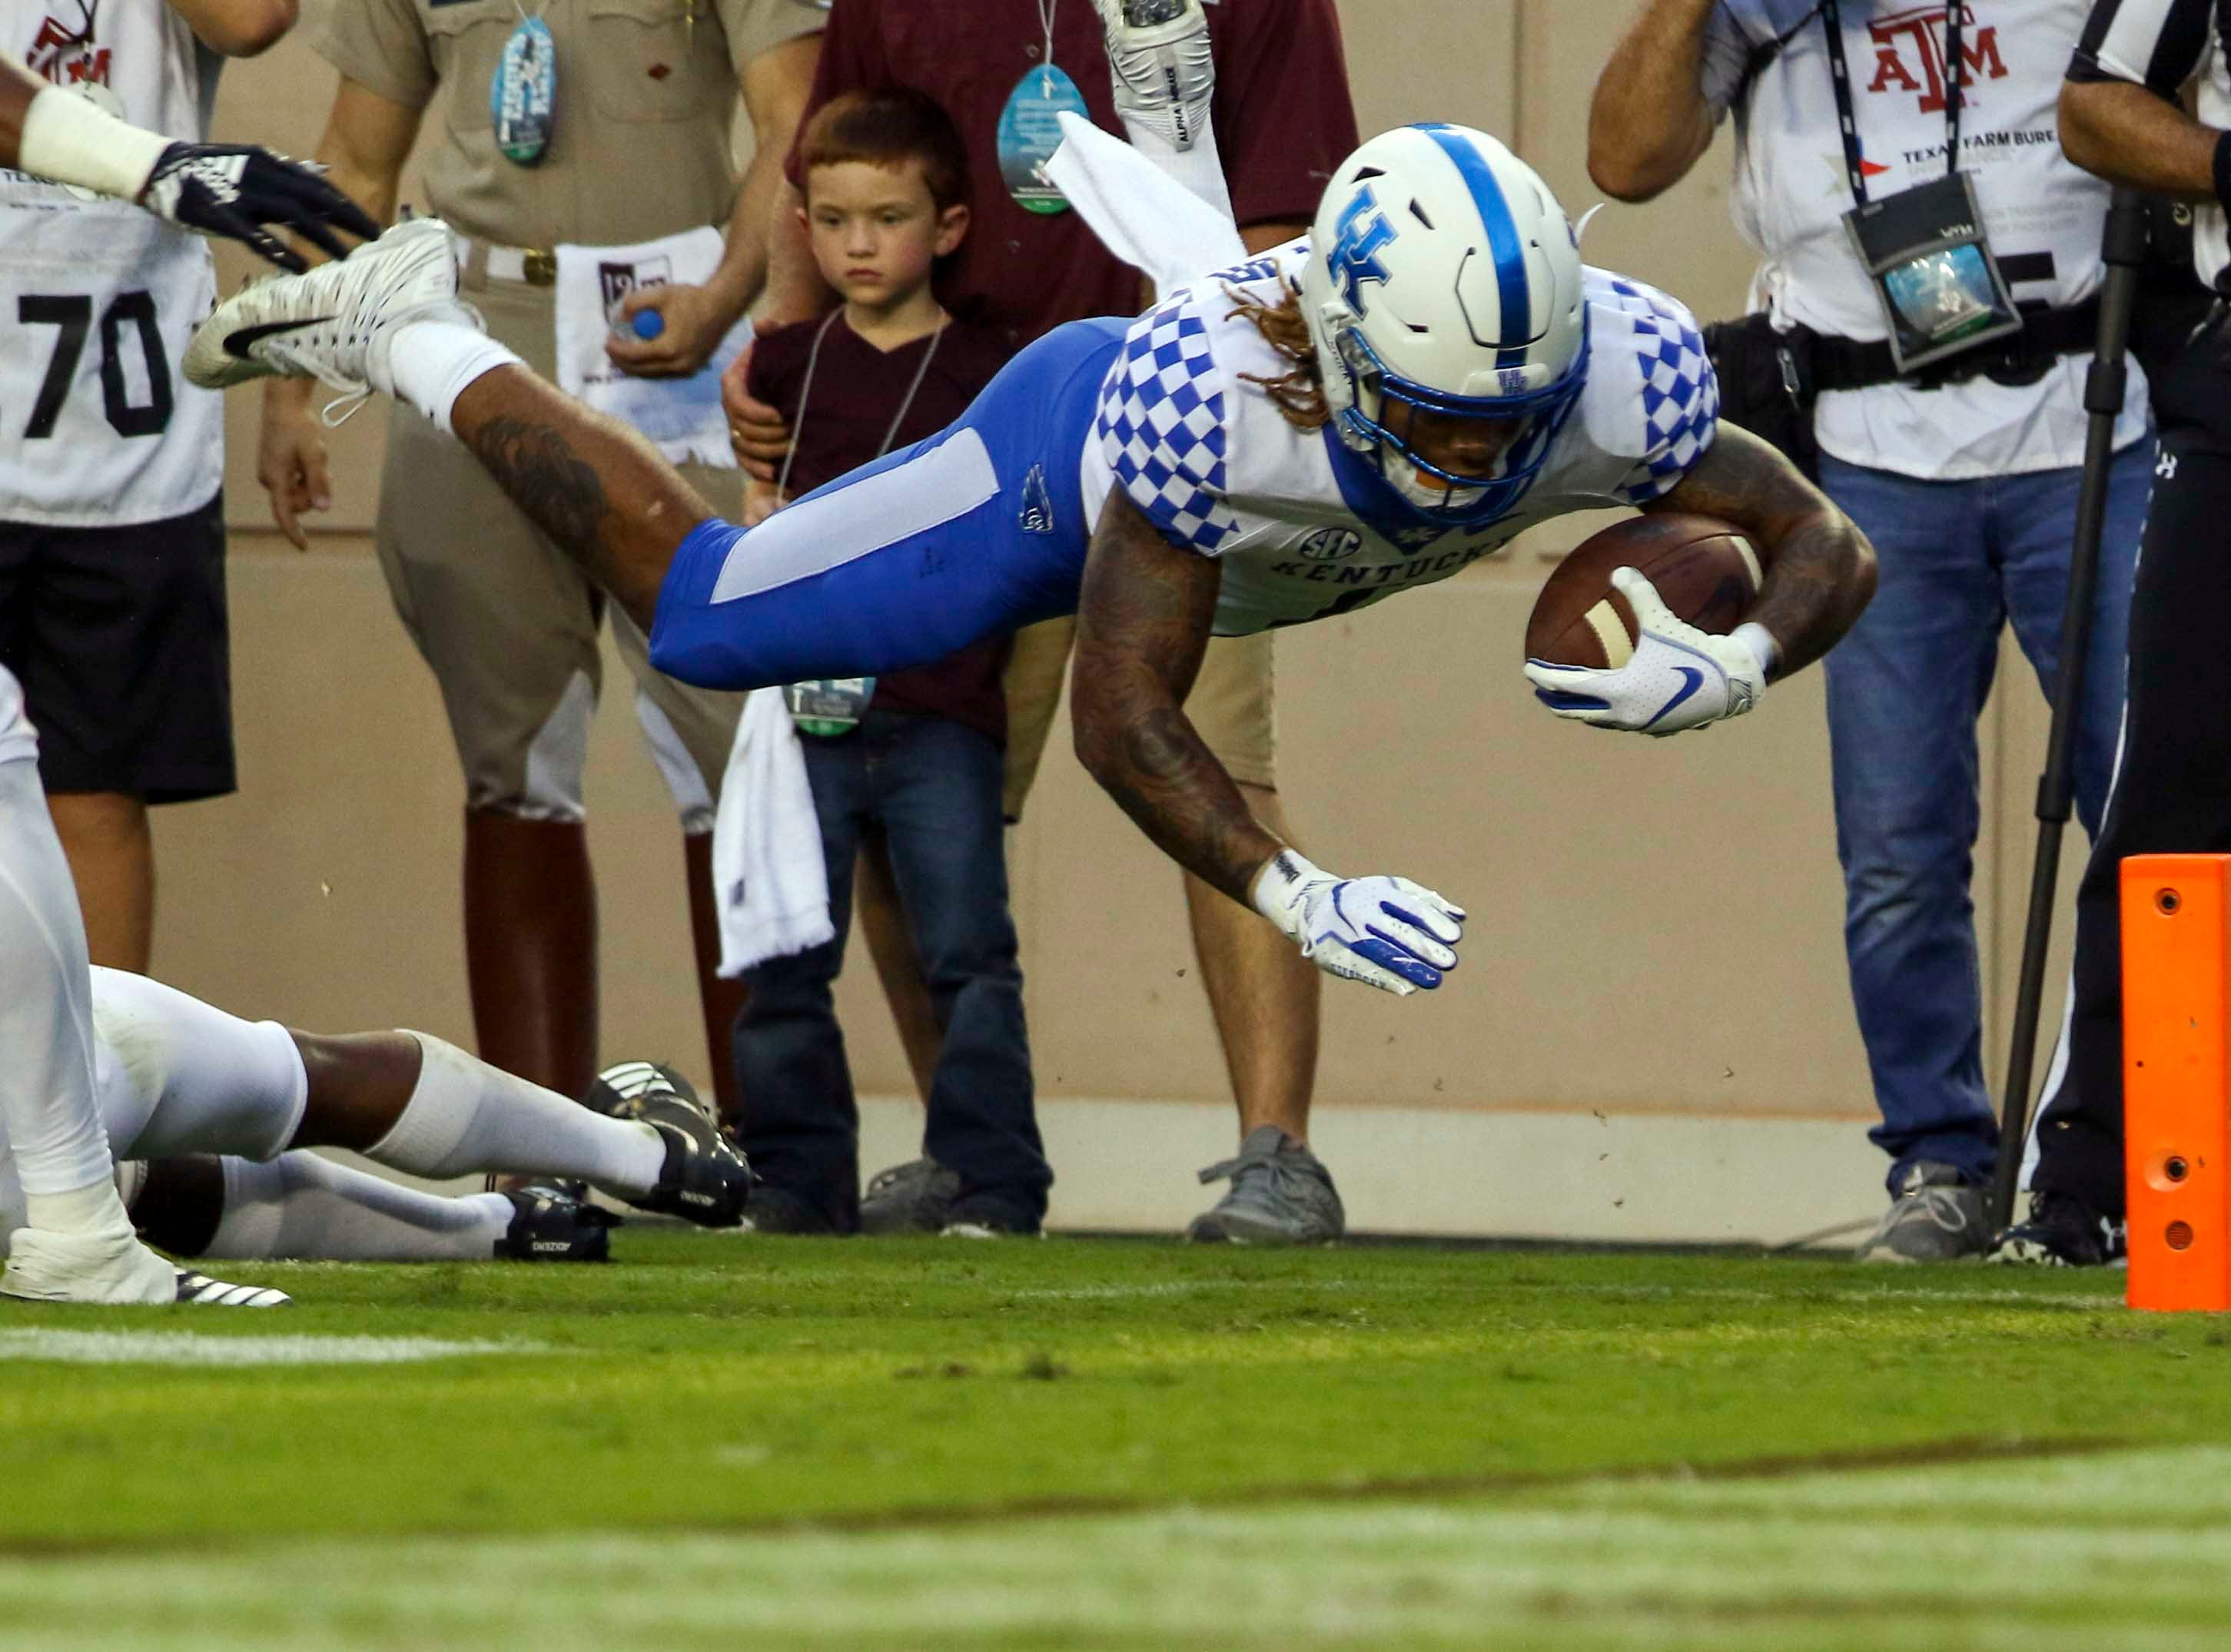 Kentucky Wildcats wide receiver Lynn Bowden Jr. (1) dives into the end zone for a touchdown during the first quarter against the Texas A&M Aggies at Kyle Field.